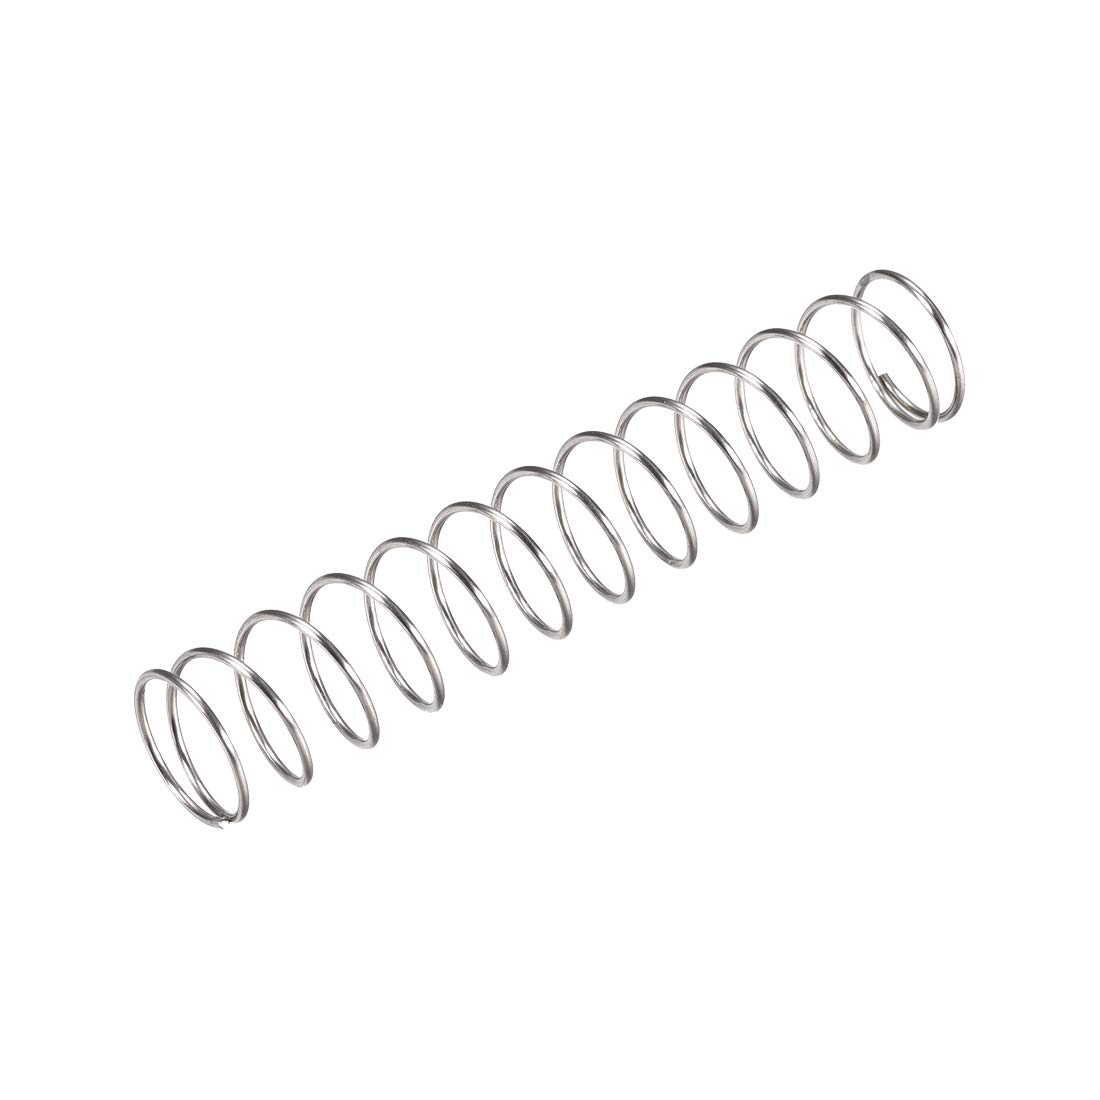 uxcell Compression Spring,304 Stainless Steel,15mm OD,1mm Wire Size,40mm Compressed Length,80mm Free Length,35N Load Capacity,Silver Tone,15pcs